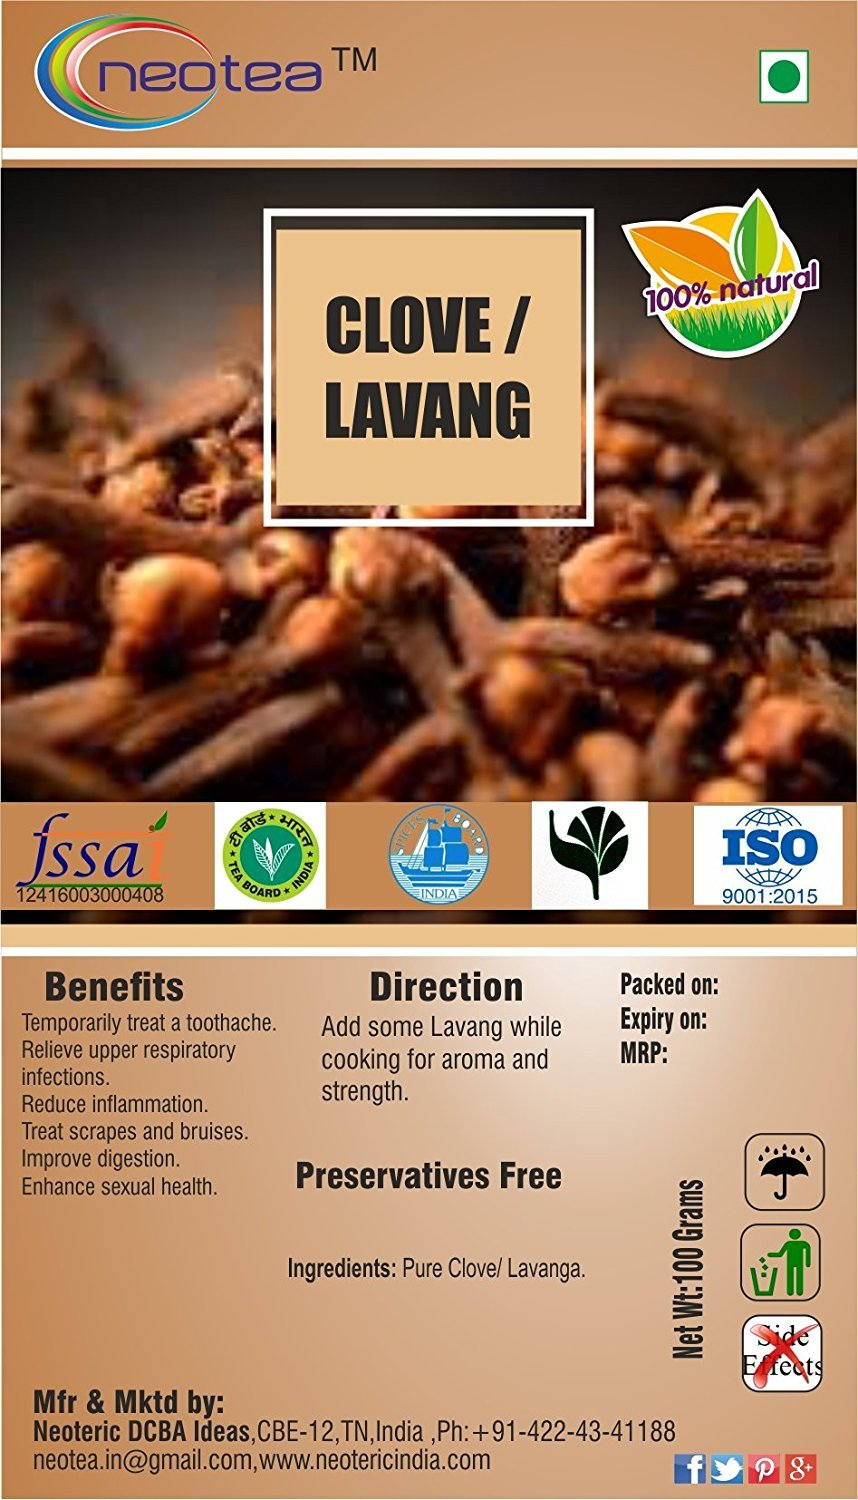 Neotea Lavang or Clove (250g) by neotea (Image #1)